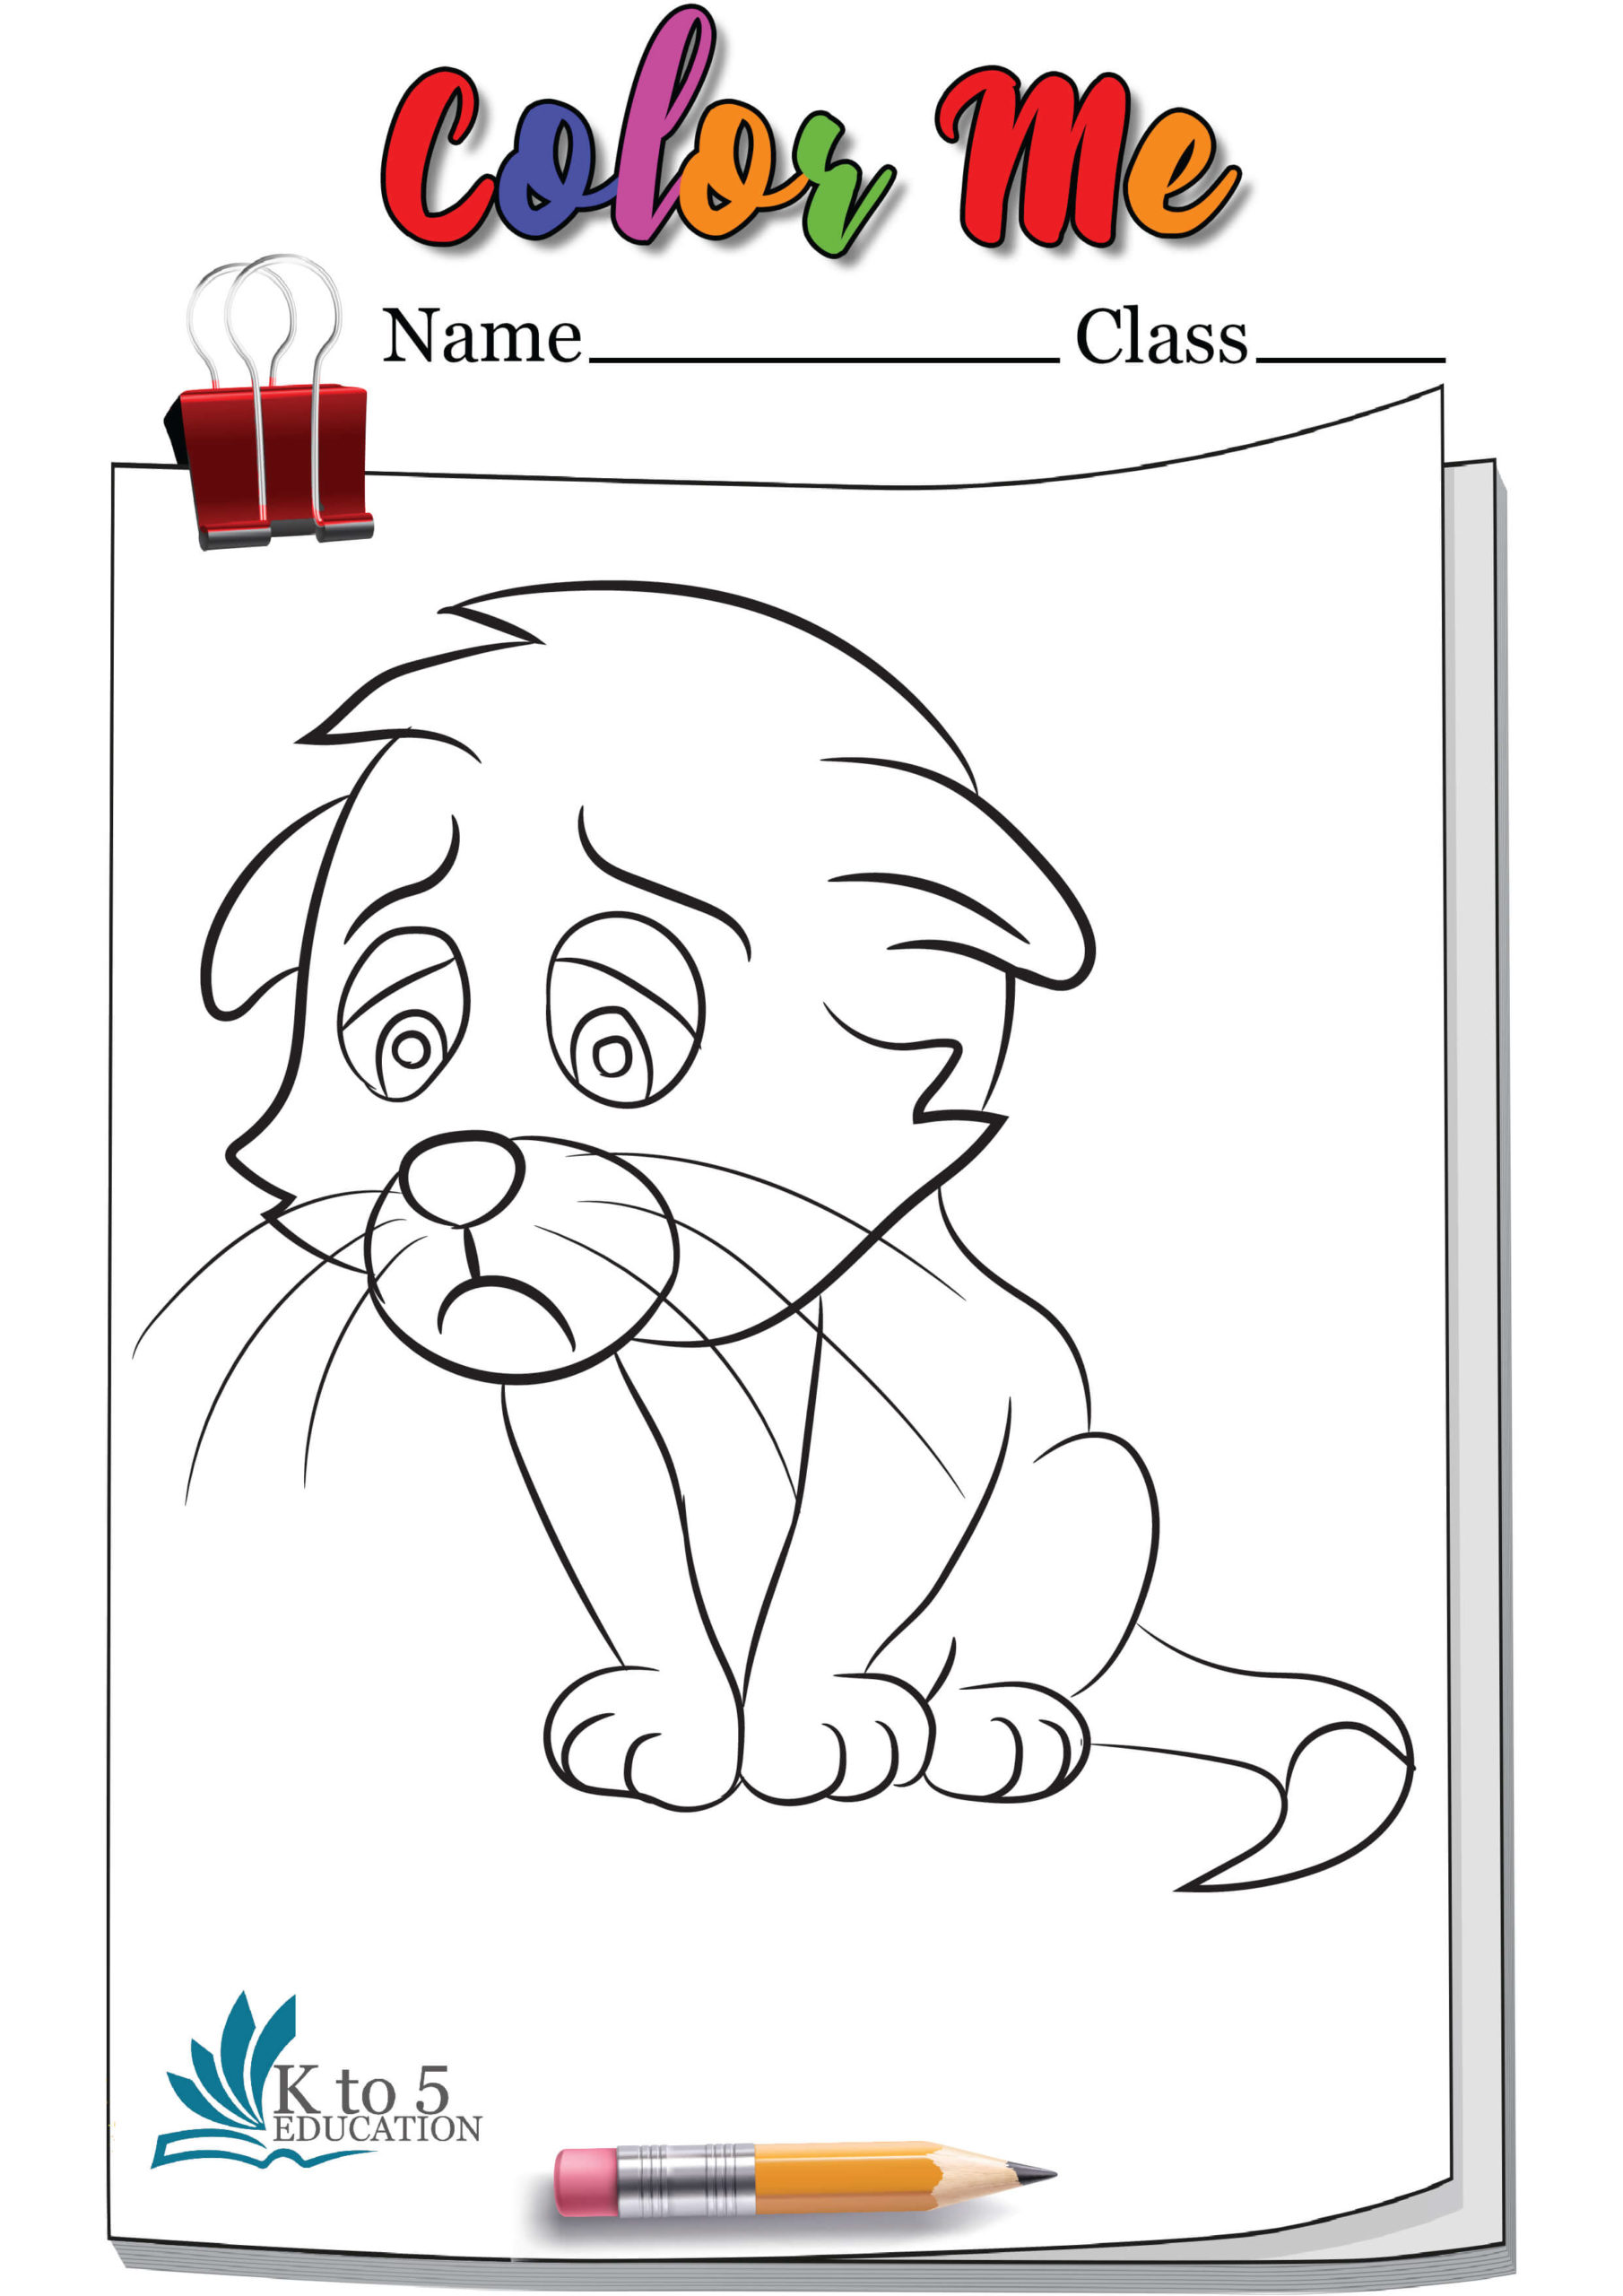 Sad kitty Cat coloring page worksheet